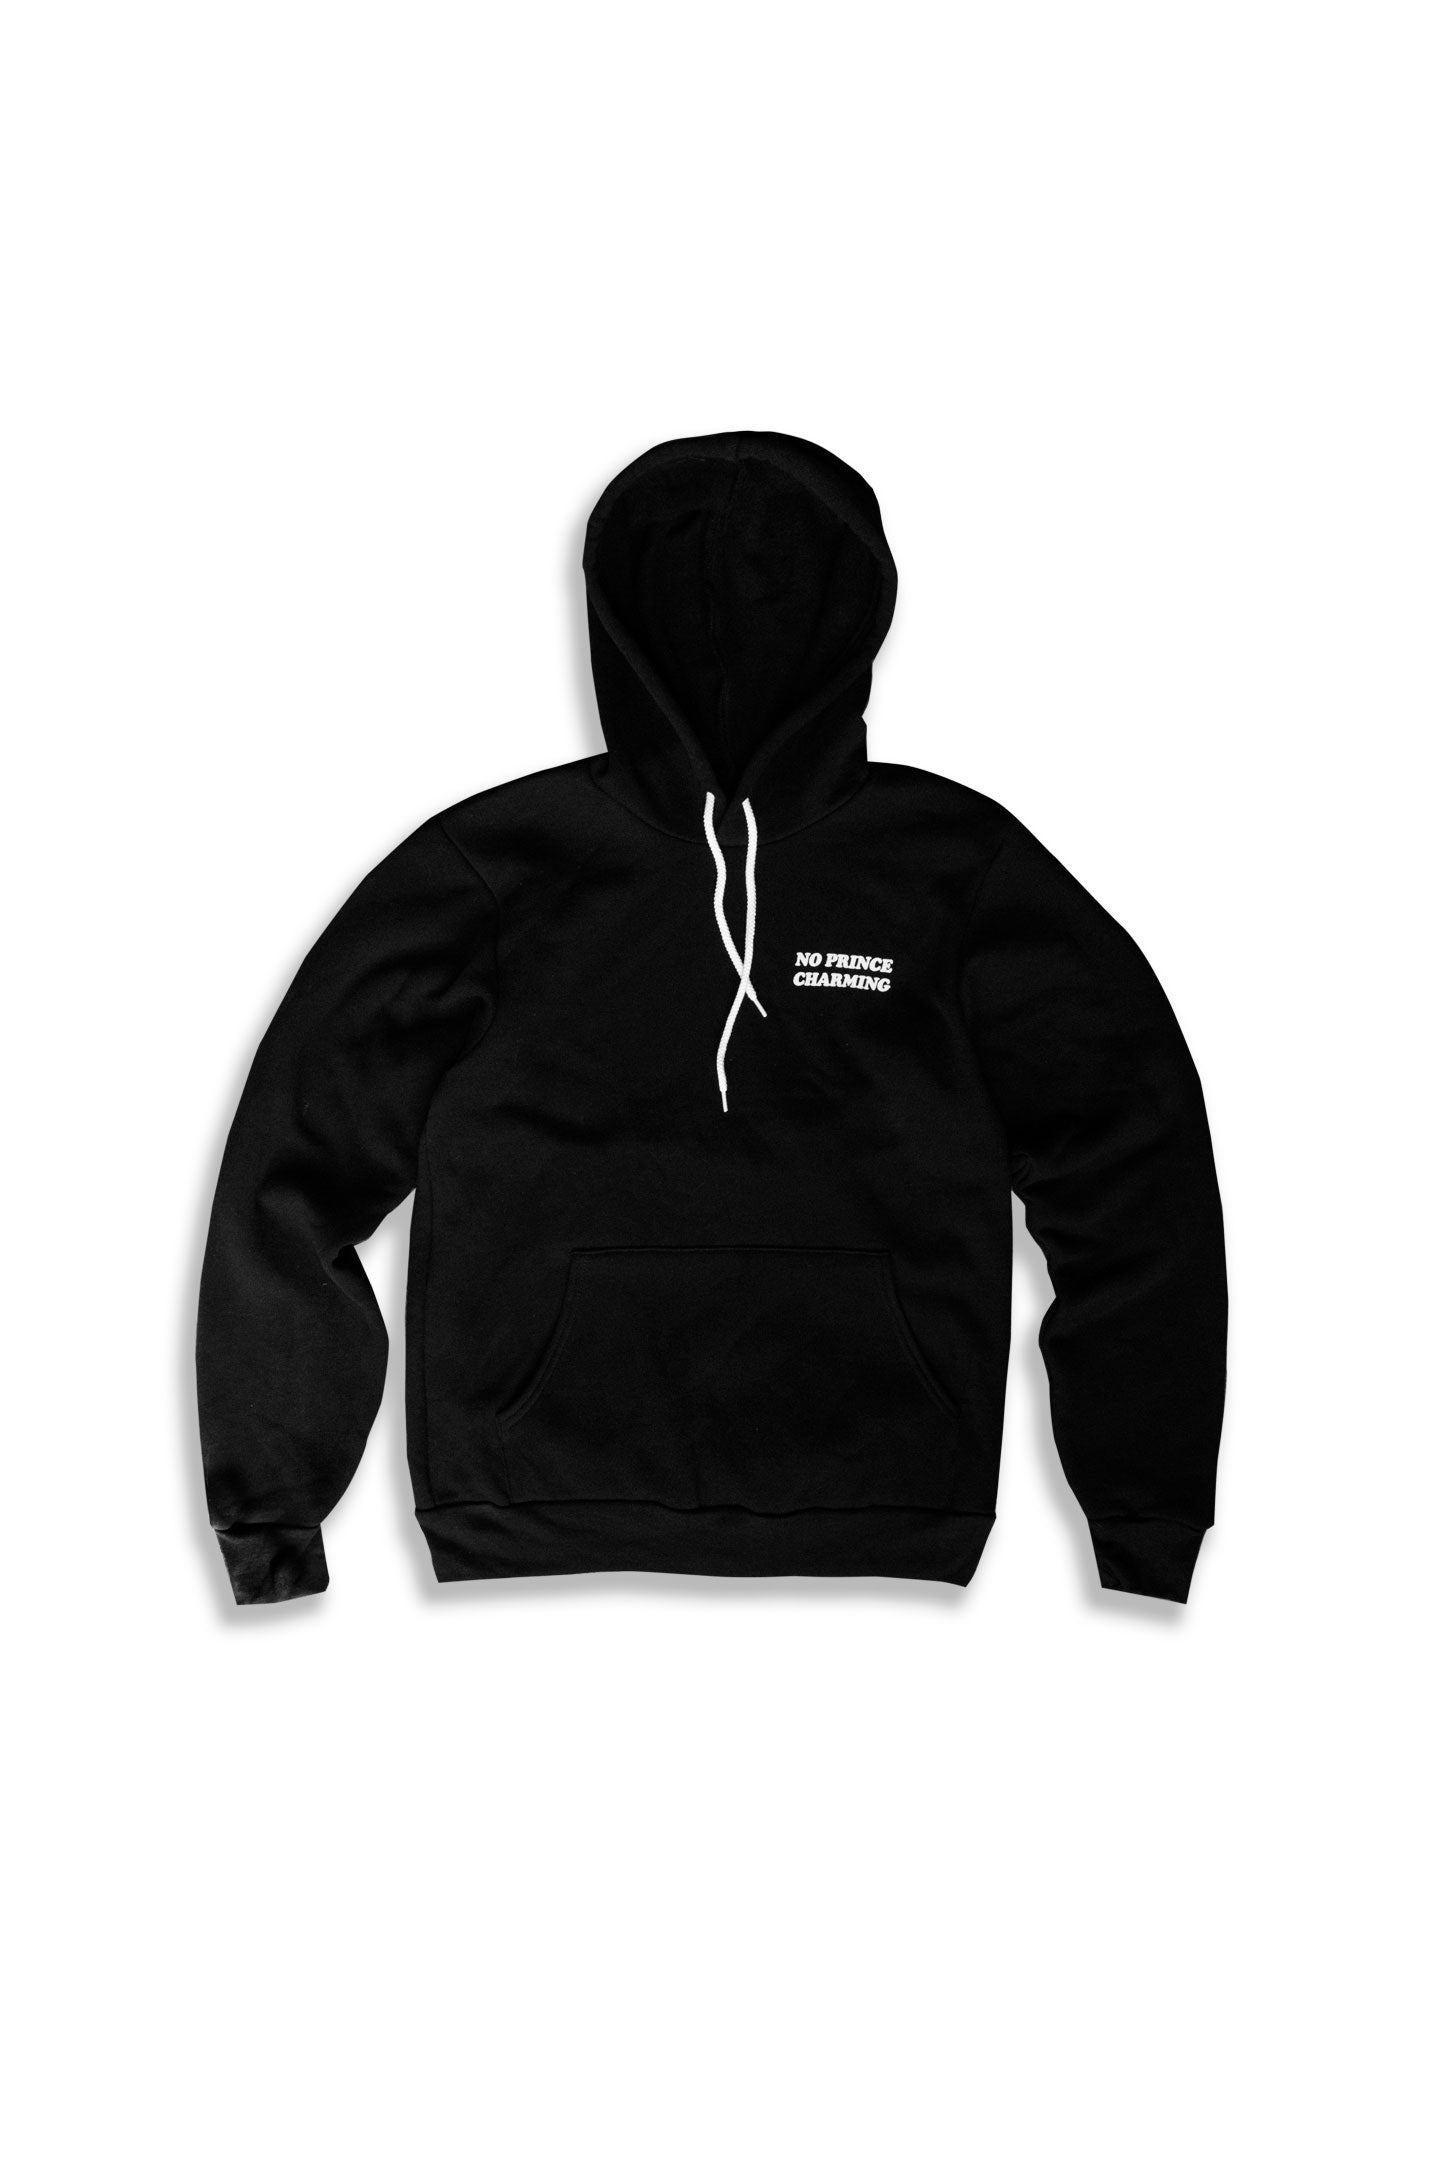 PRINCESS SAVES HERSELF FULL LENGTH HOODIE - BLACK